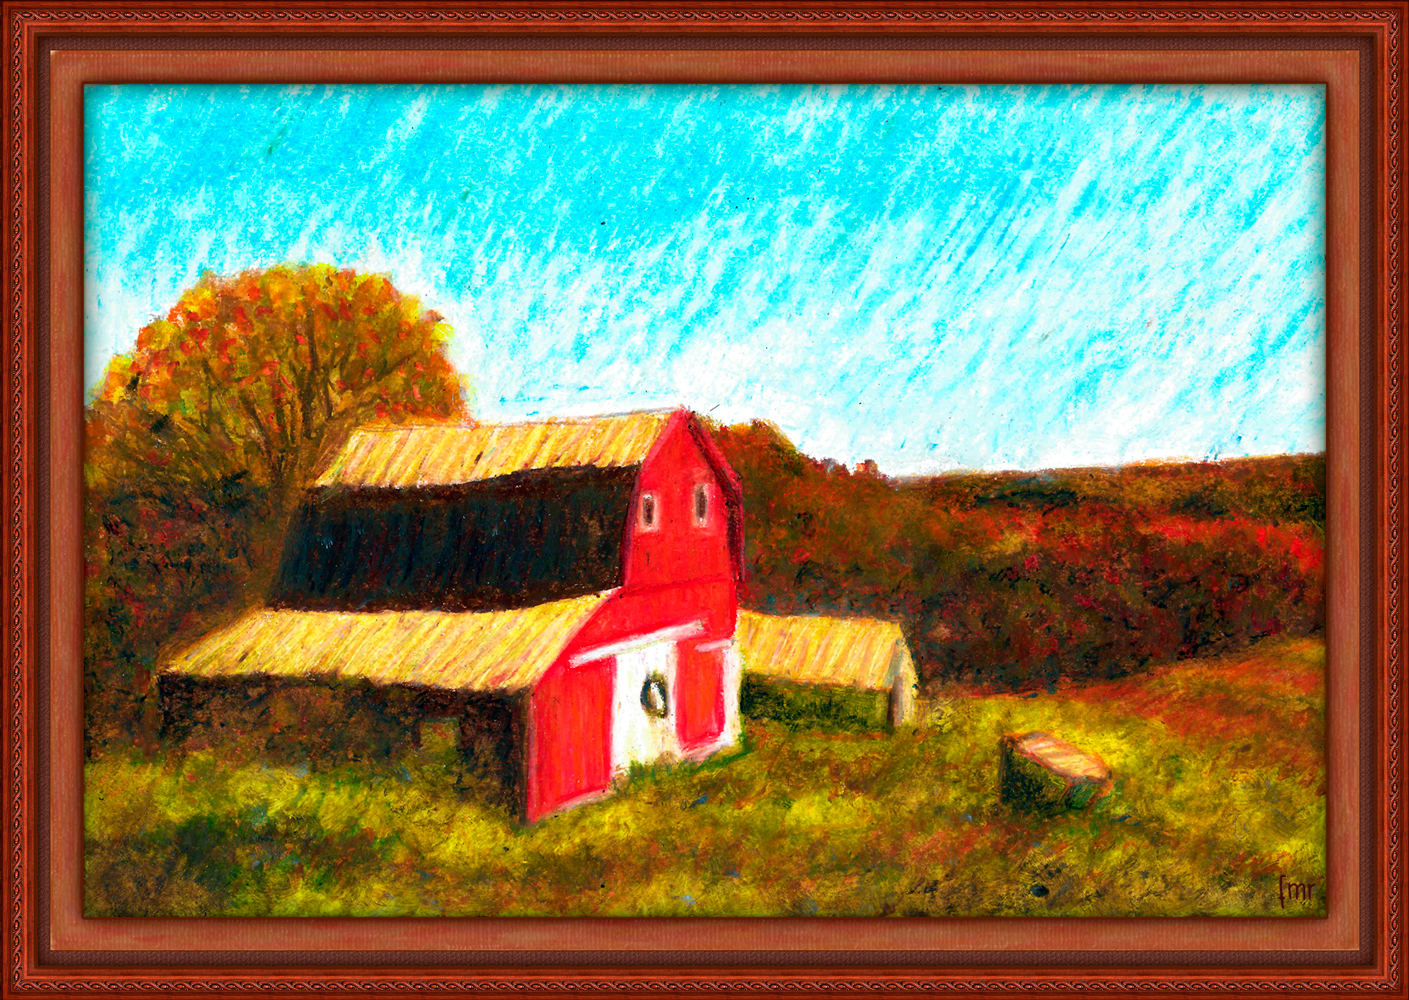 Red Barn by Saltwater